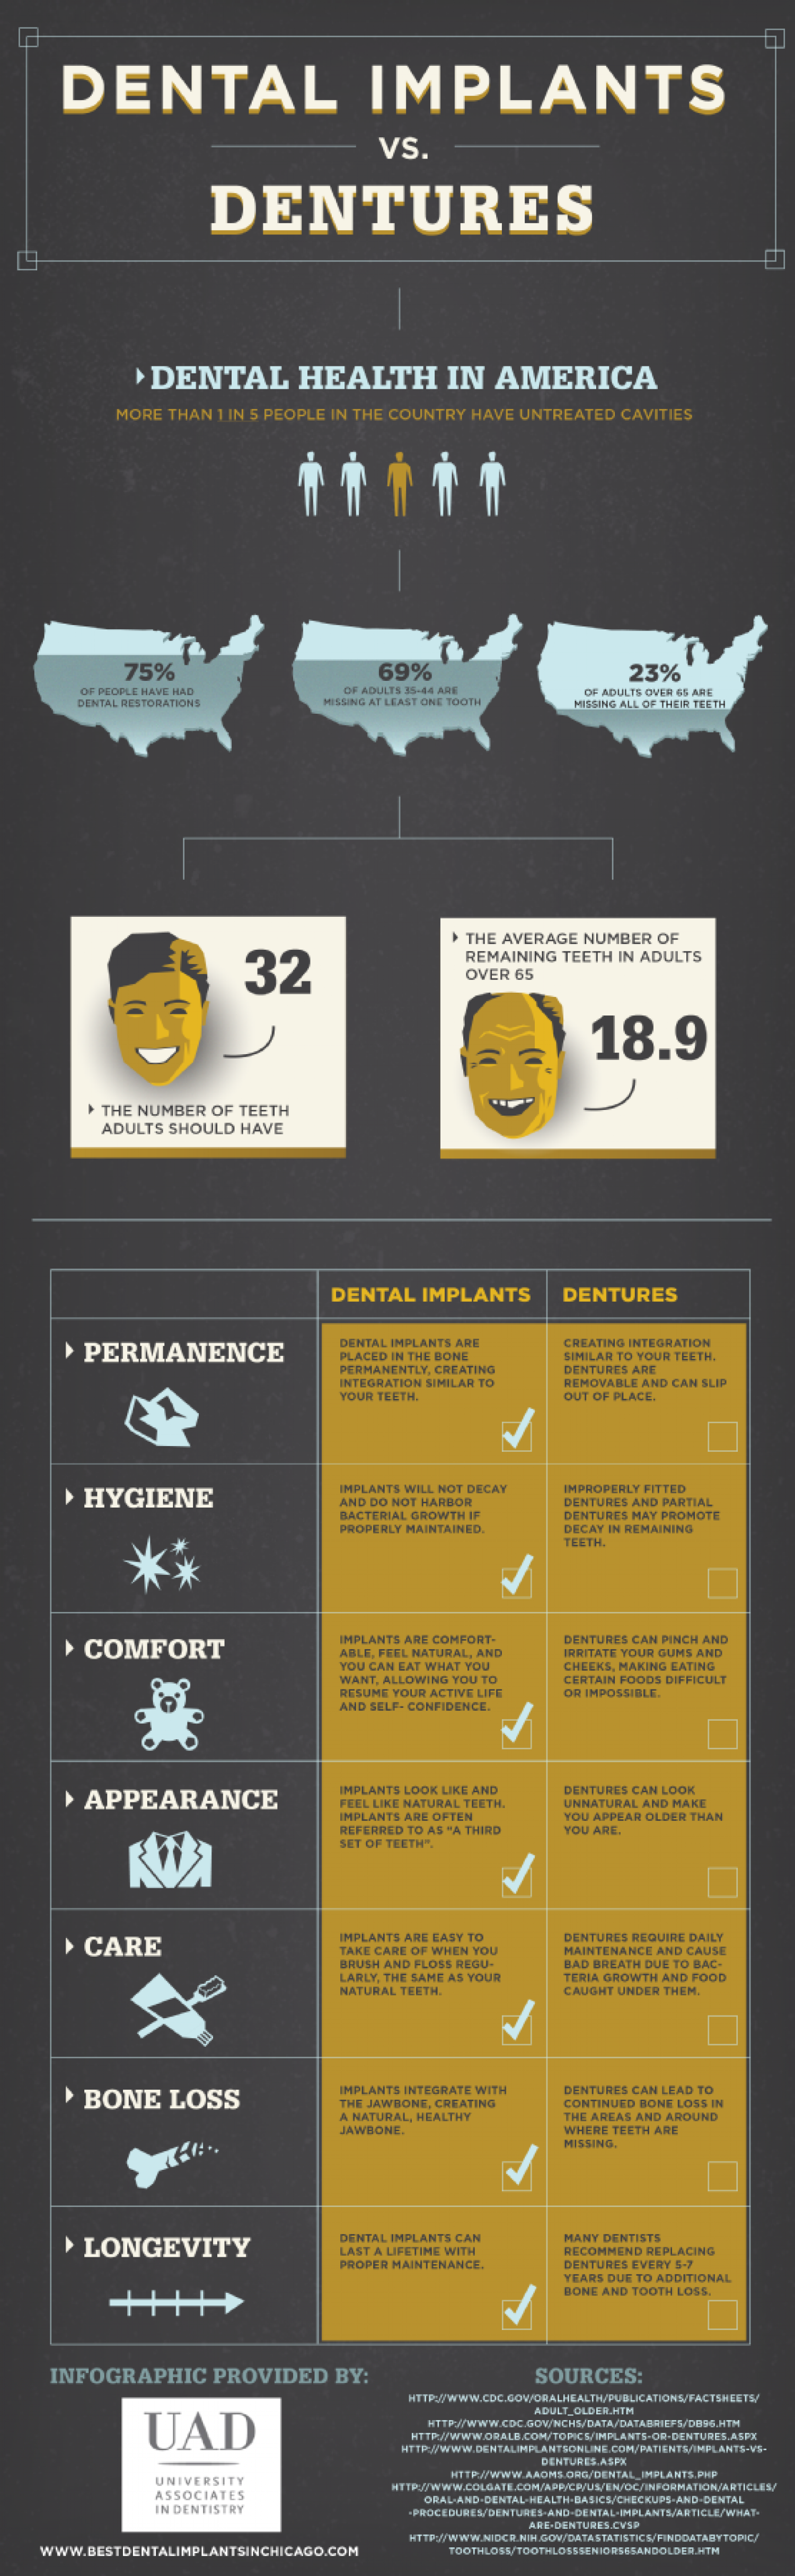 Dental Implants vs. Dentures Infographic